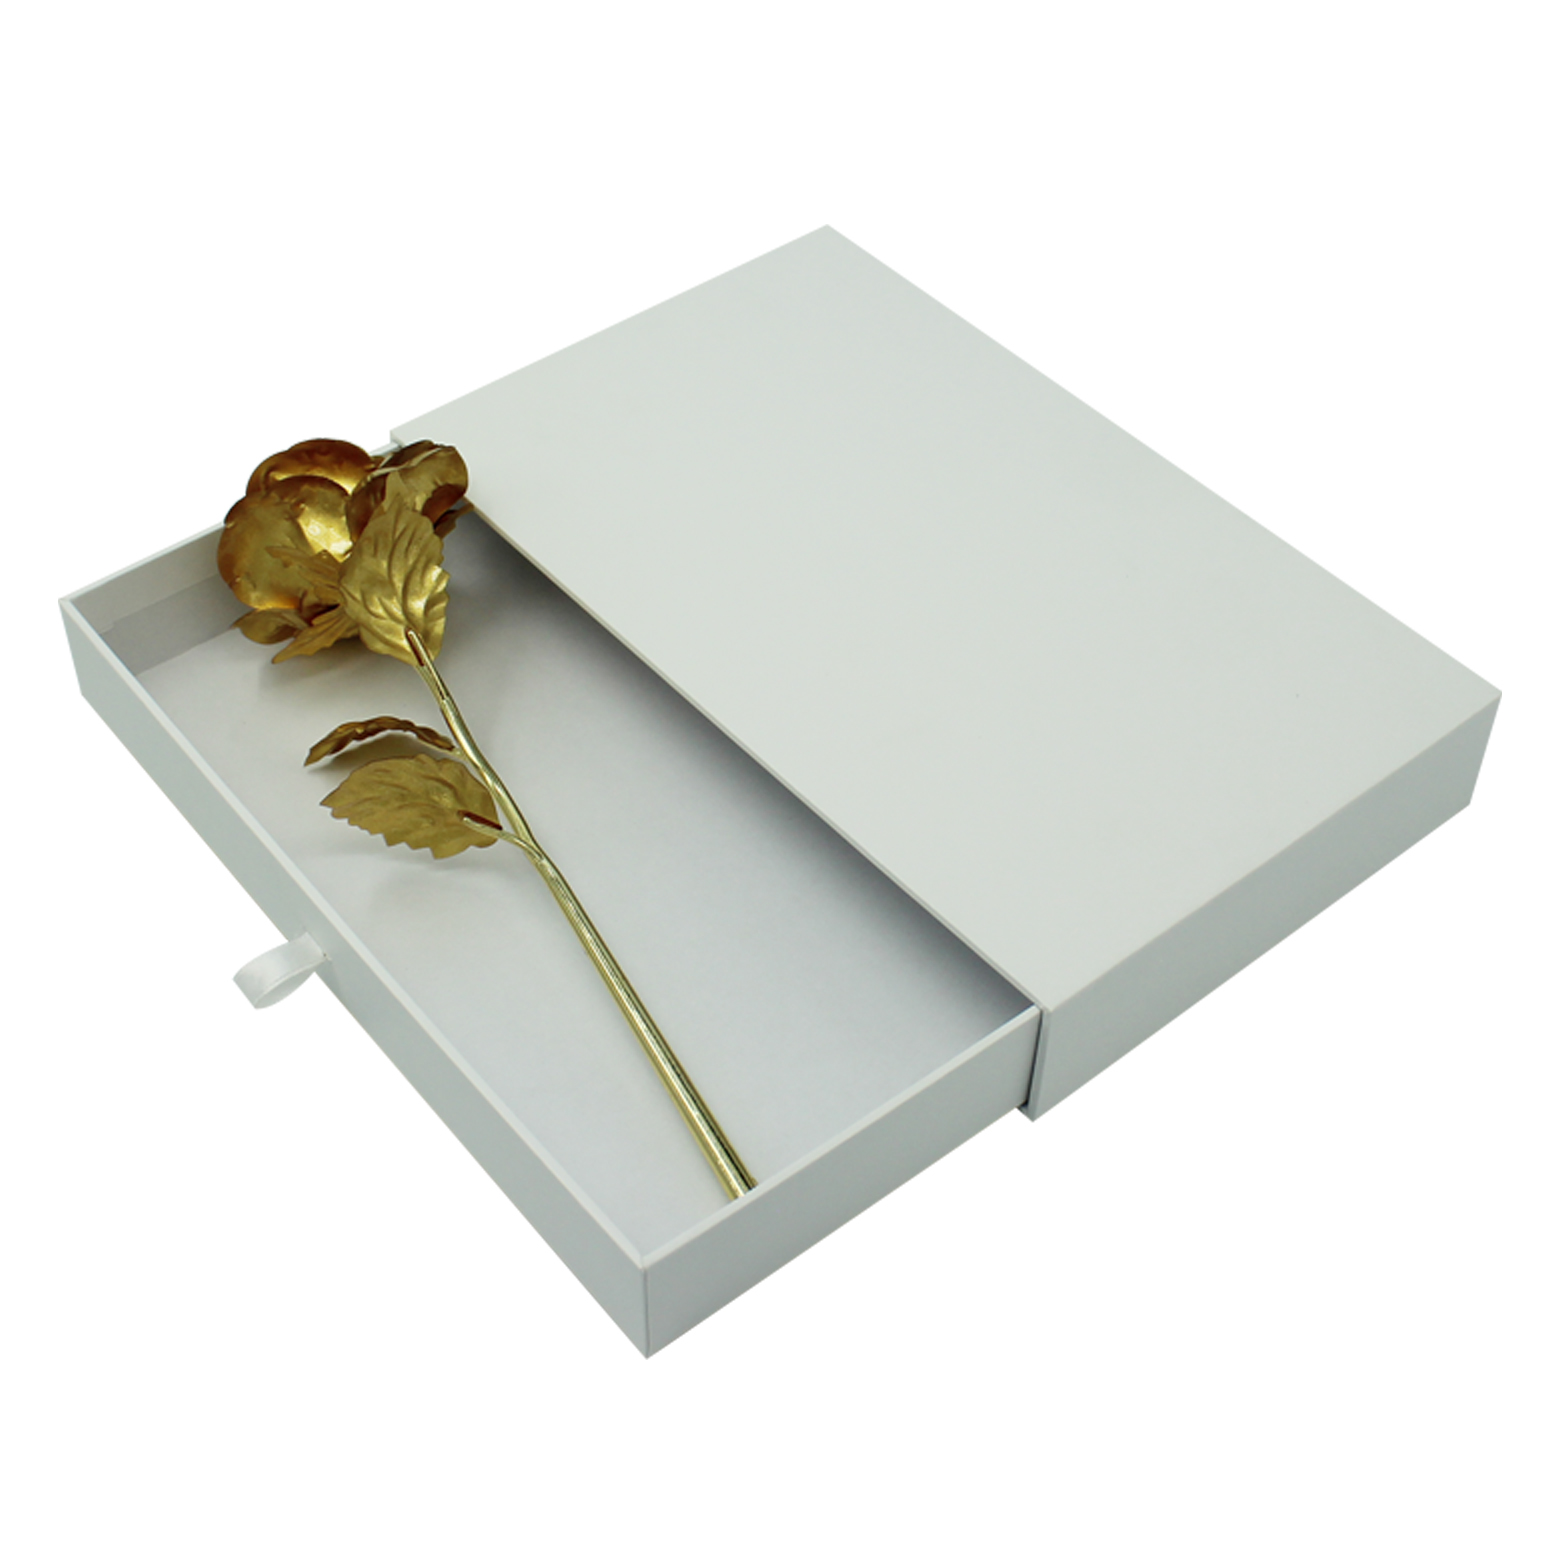 Accept Custom Order Sliding Drawer Box with Pull-out Drawer